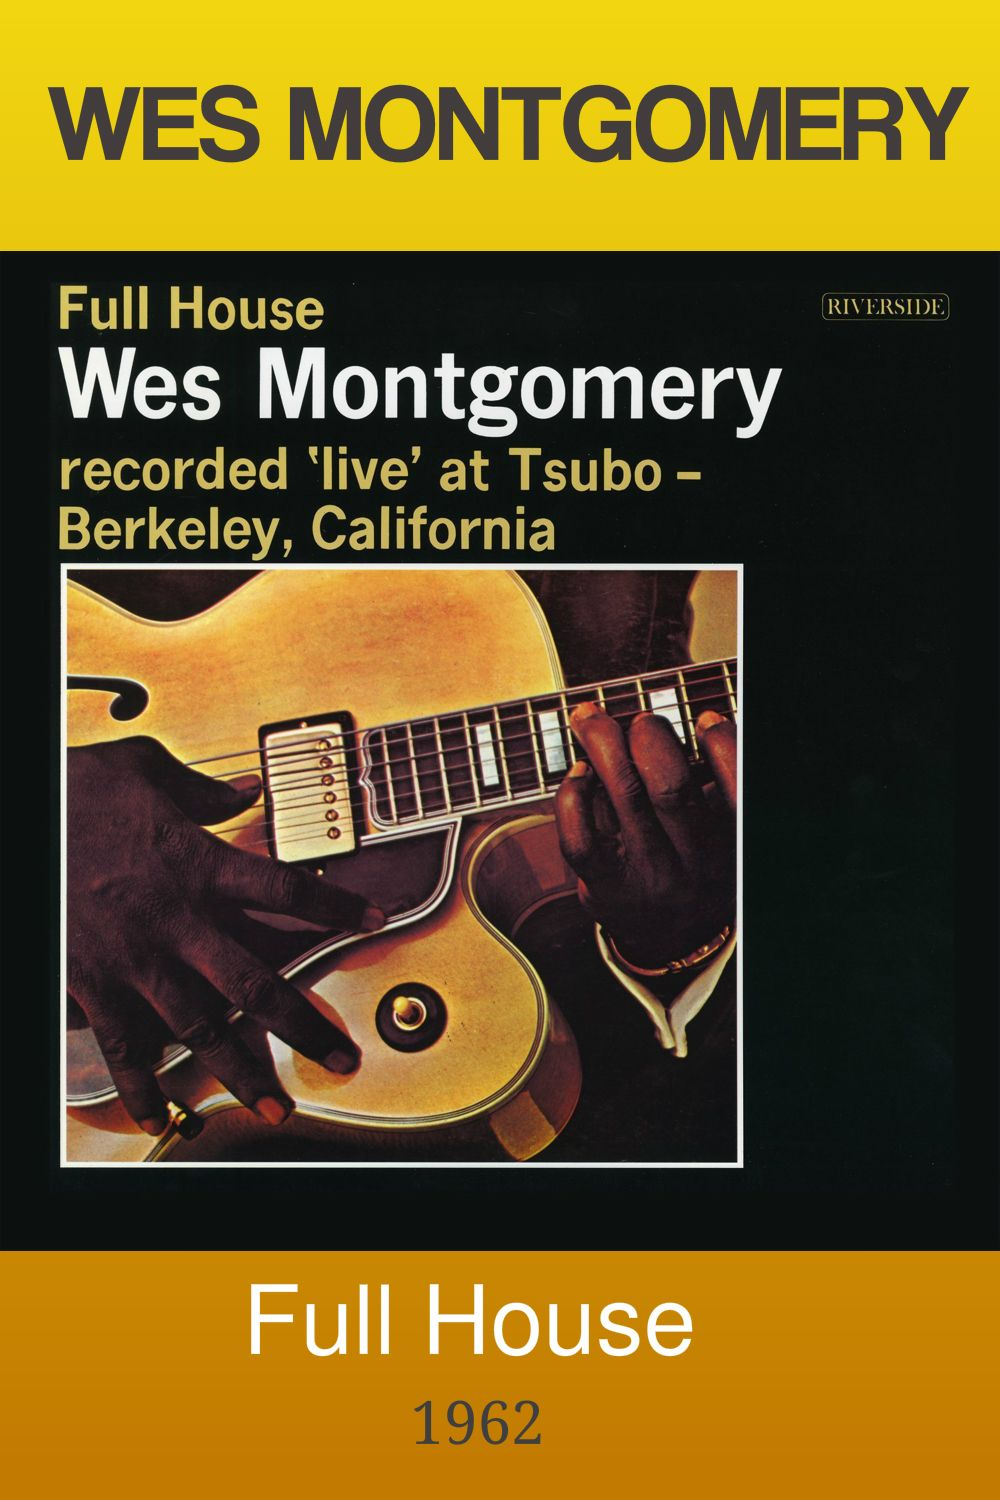 Wes Montgomery Full House Full Album In 2020 Full House Album Montgomery